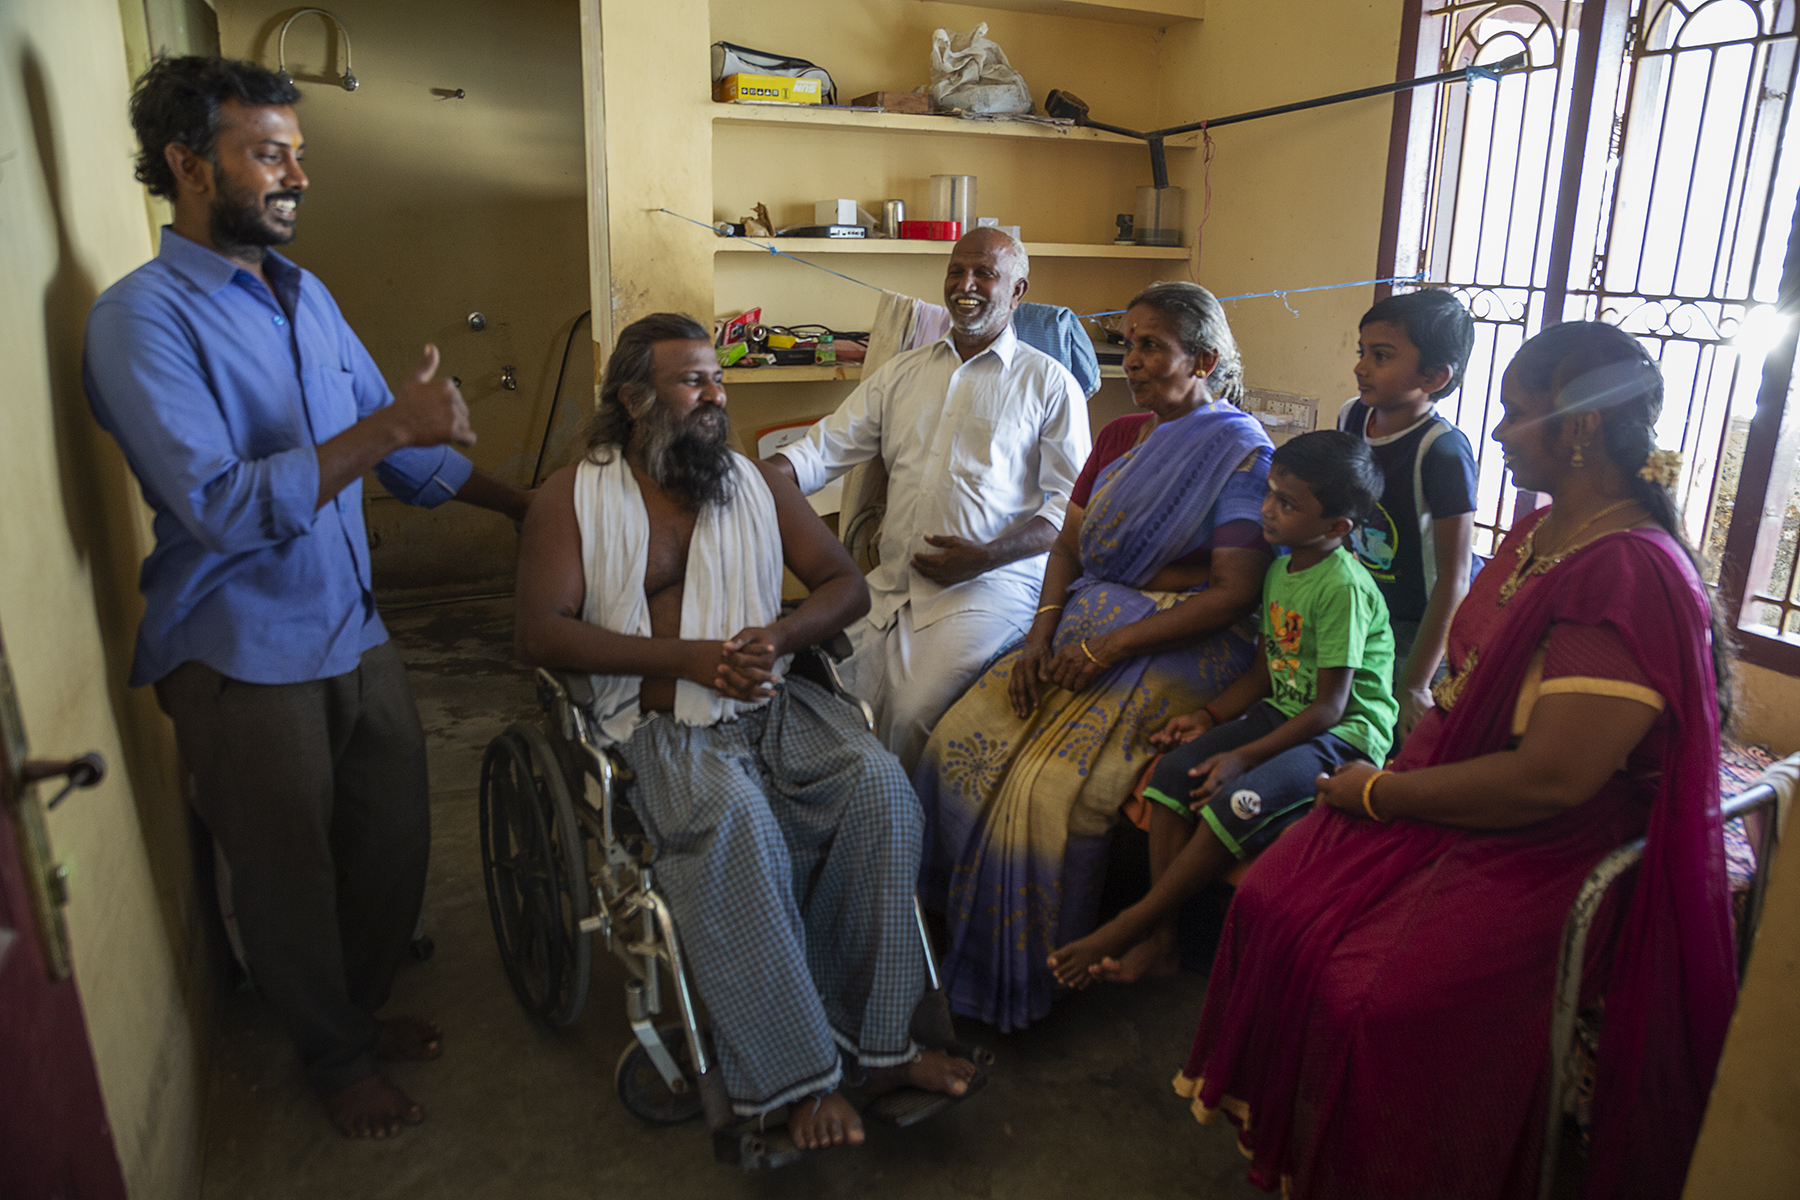 Vallinayagam in his room in his wheelchair is surrounded by his family. To the left of him stands his younger brother Mahesh (35), wearing long-sleeved blue shirt and brown pants, smiling broadly and giving a thumbs-up sign. The rest of the family is sitting on his bed to the right of him: his father Bhagavanar (63) who is laughing, in white shirt and white dhoti, mother Krishnammal (60) in blue and beige pattern sari, nephews Mukundan (6) and Balaji (9) in shorts and T-shirt, and sister-in-law Sakthi (31) in maroon salwar-kameez, who is smiling and looking at Vallinayagam.